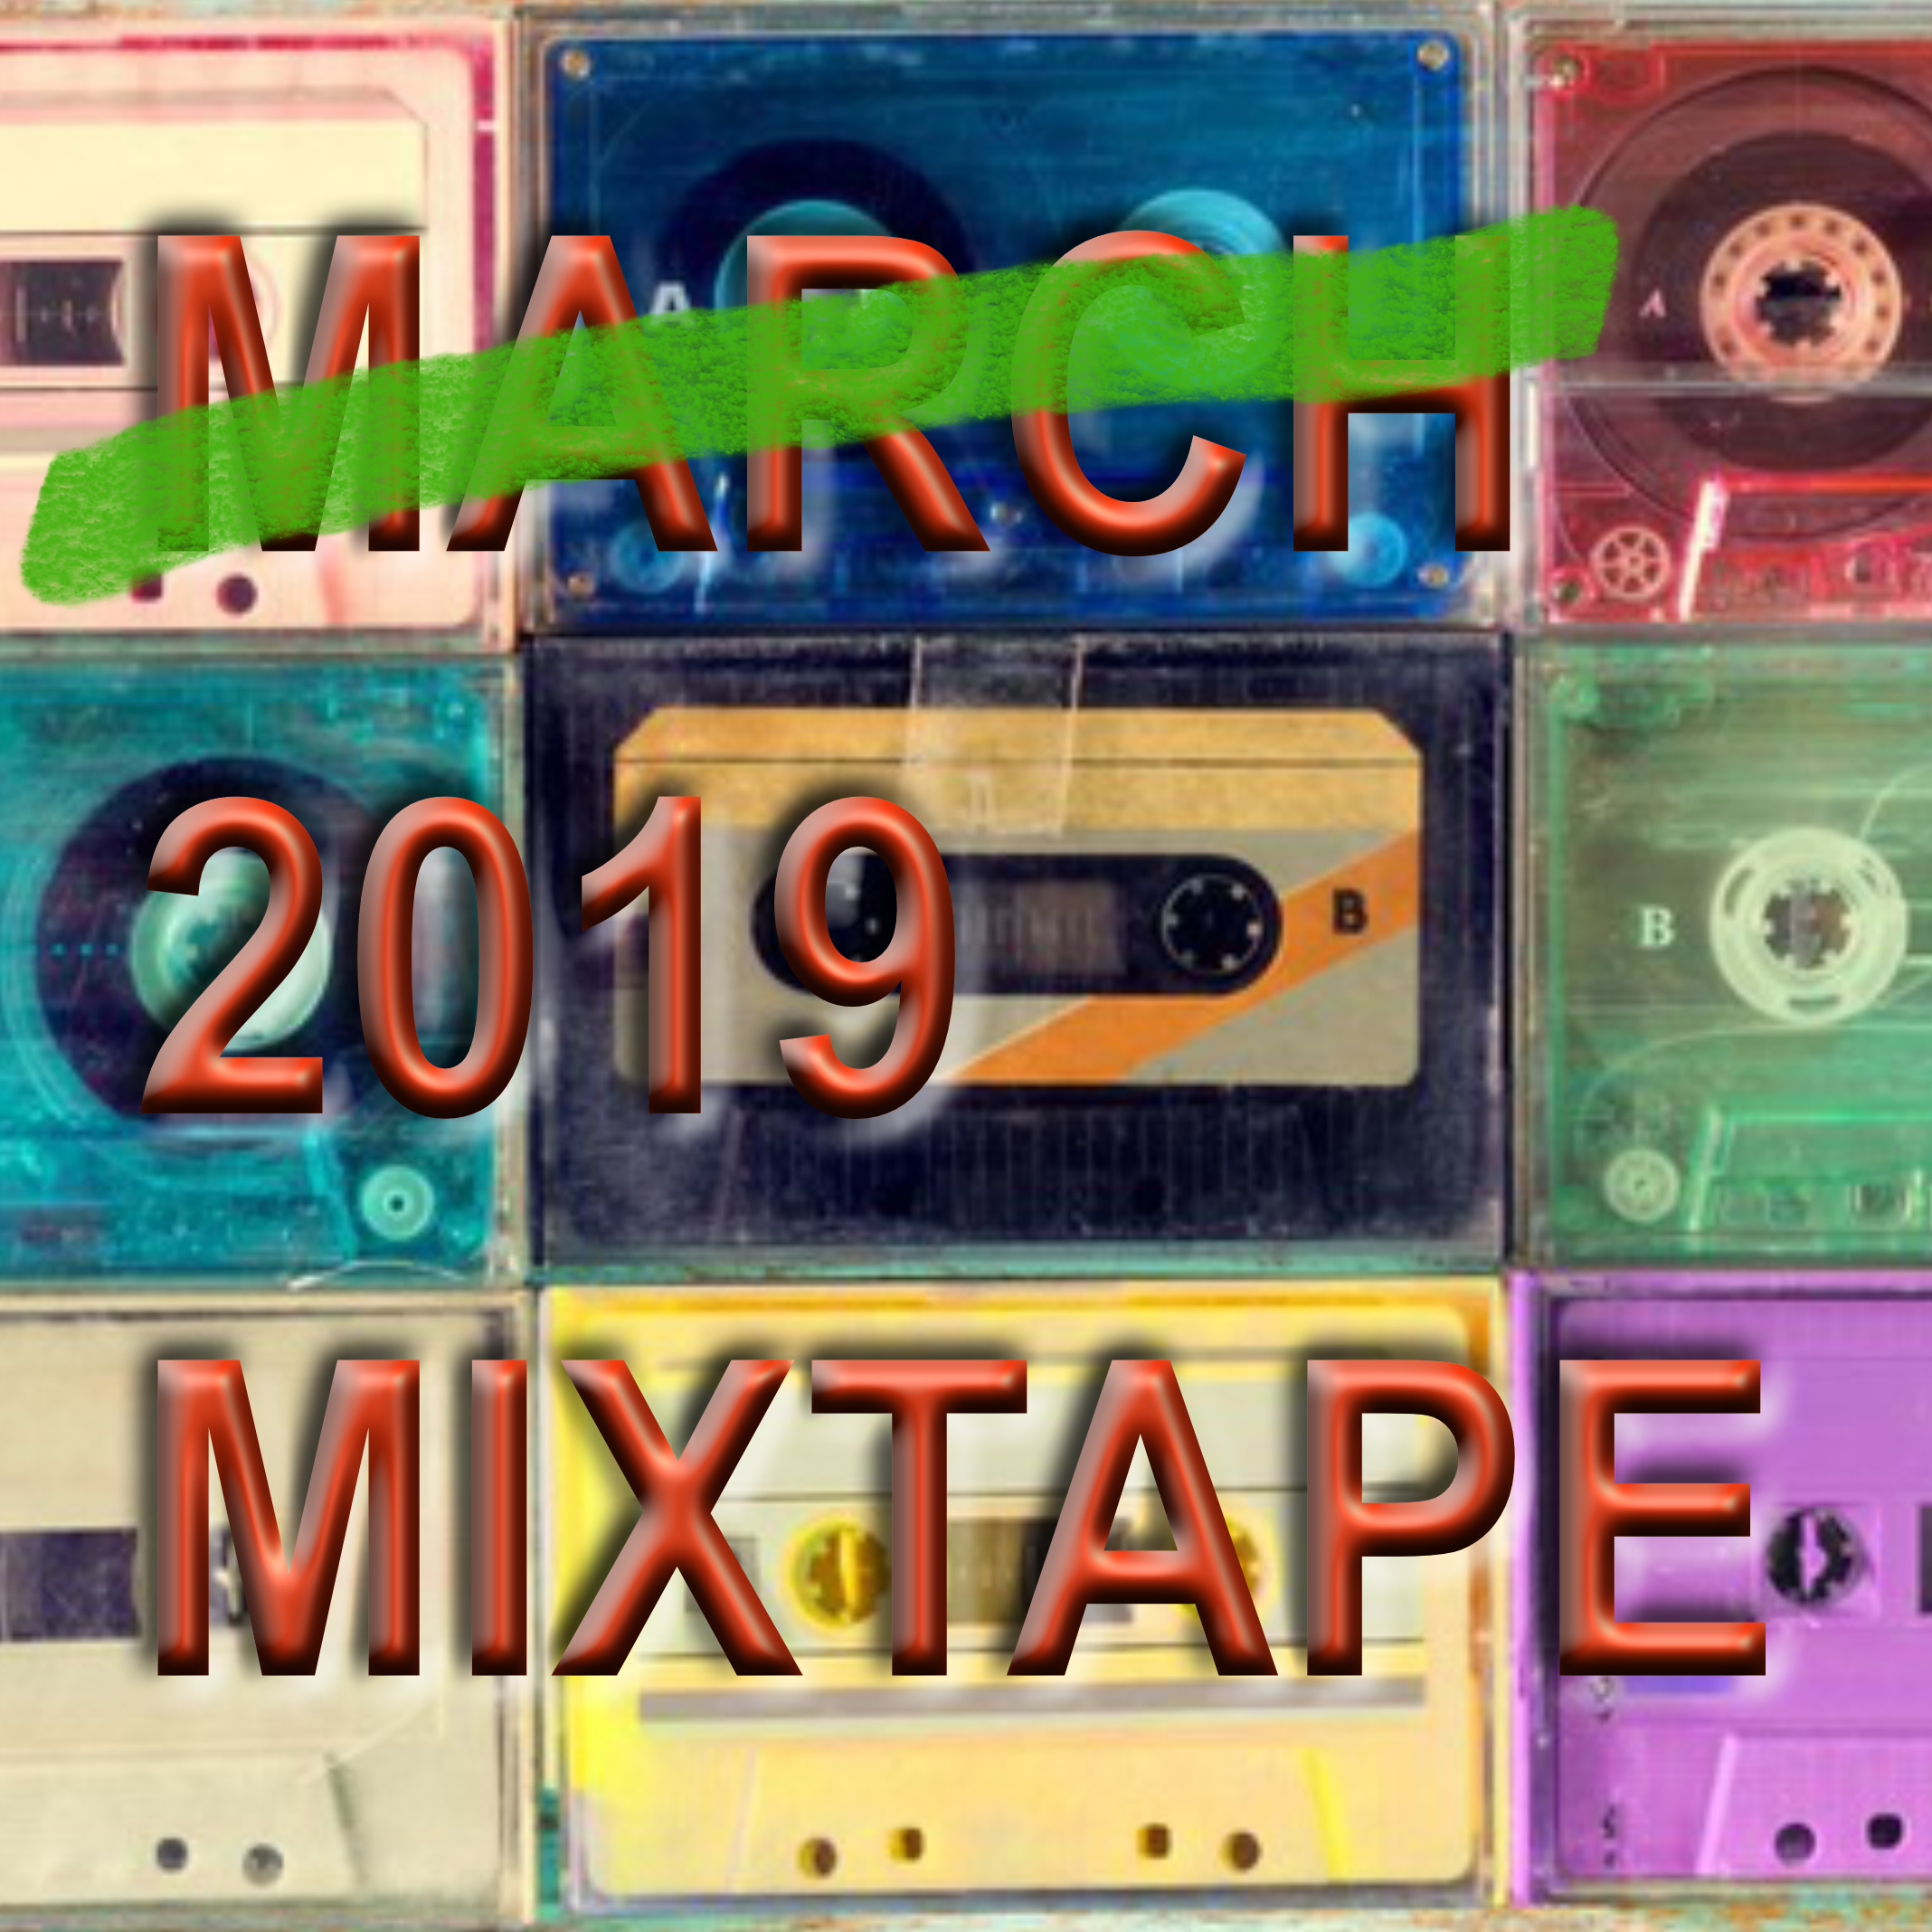 Our Monthly MixTape March'ed On - Impossible to mention them all. Tempting but impossible. Enjoy exploring the rest and filling the gaps.